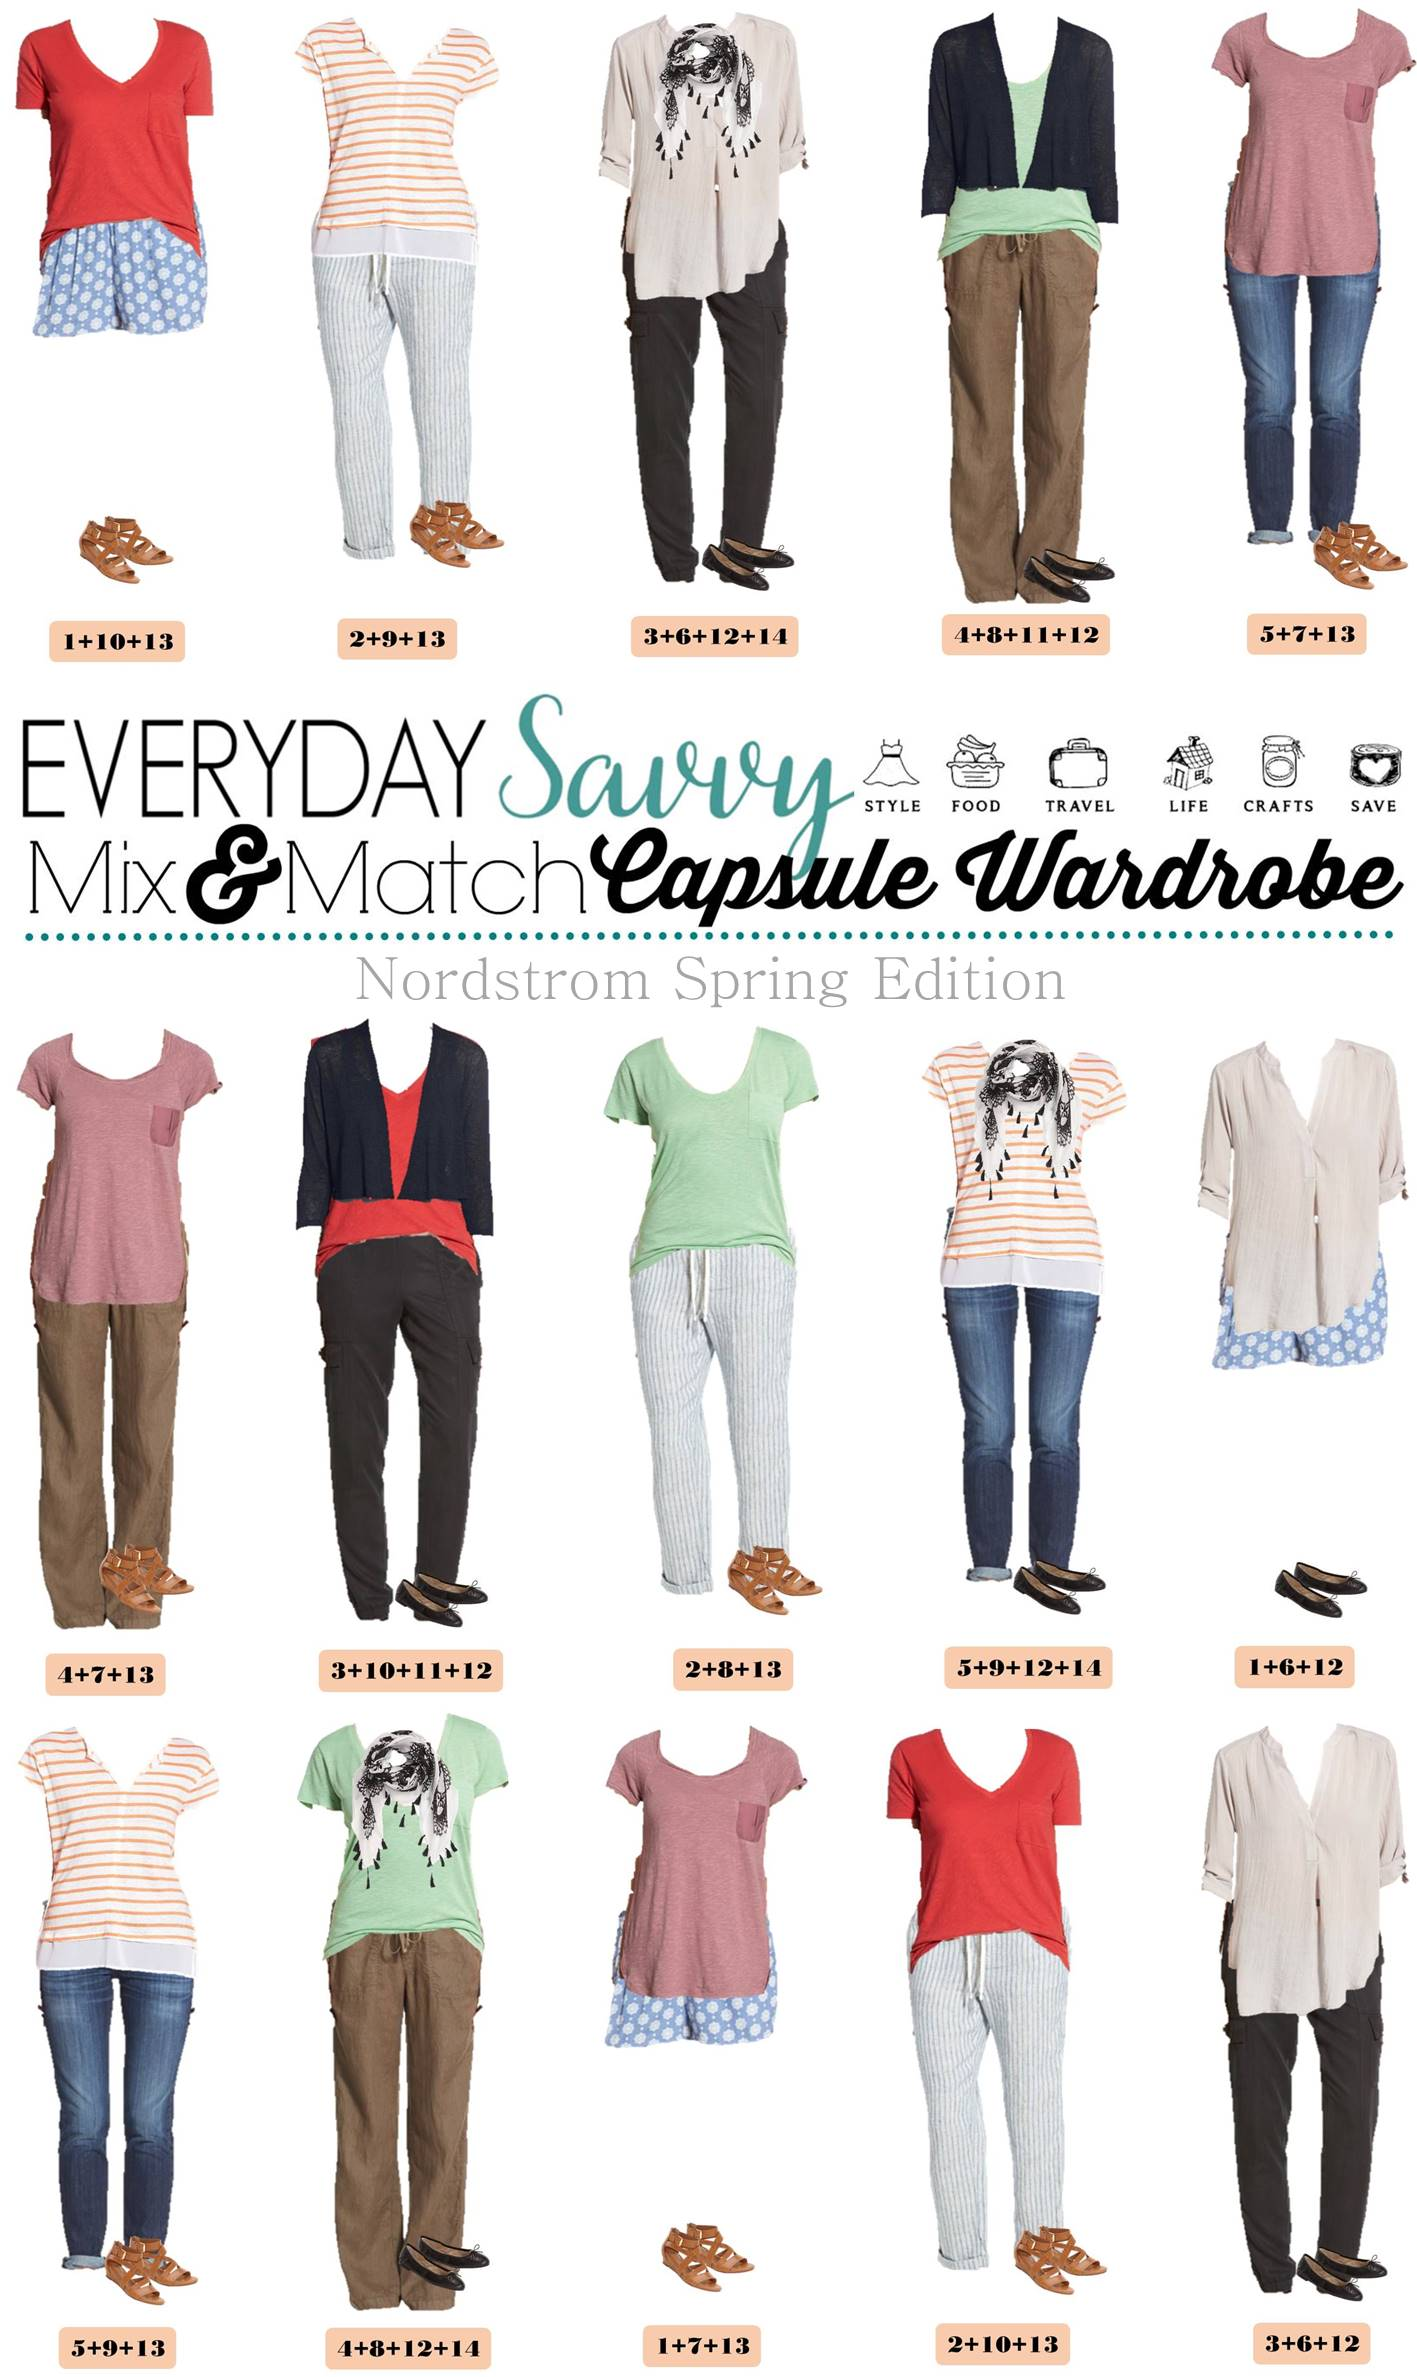 Nordstrom Spring Capsule Wardrobe Mix Amp Match Outfits